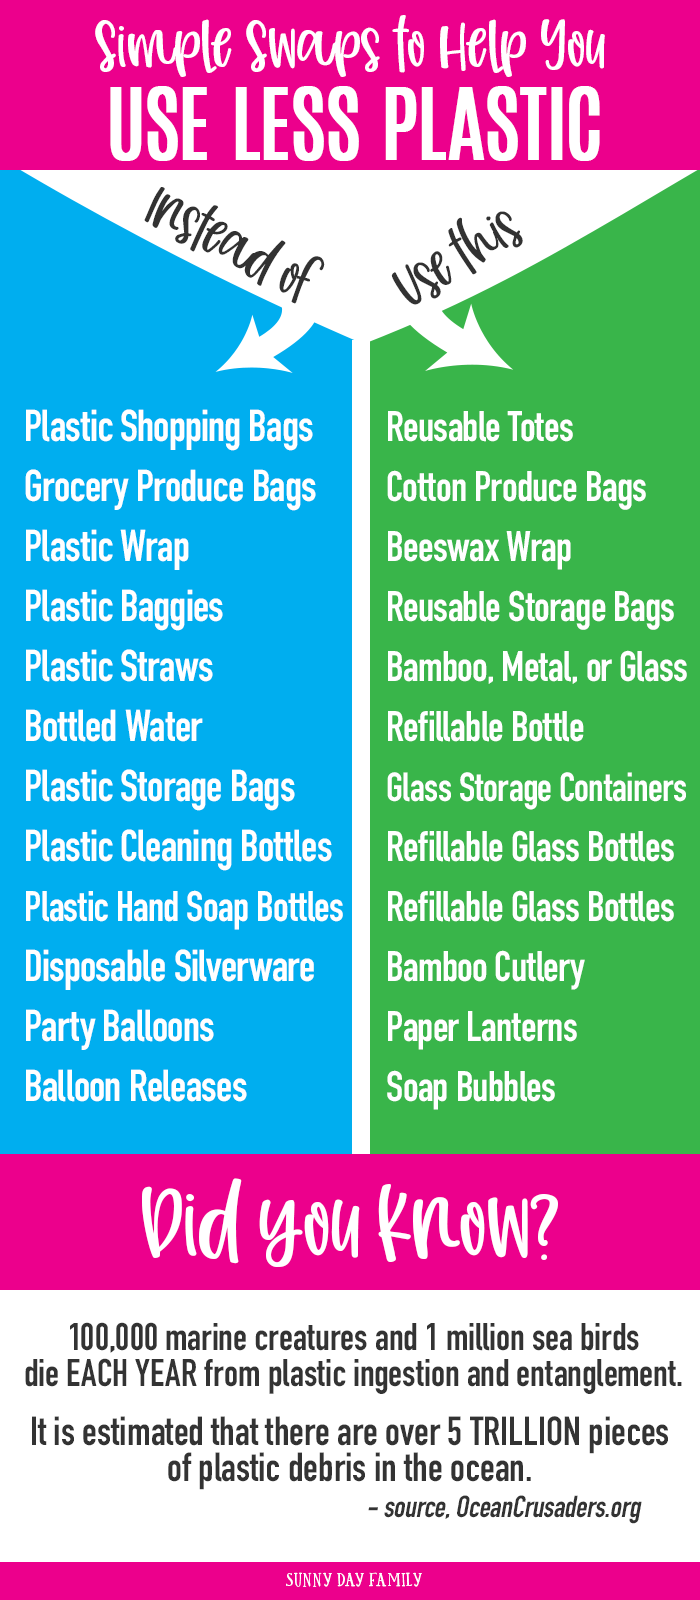 Use less plastic with these simple alternatives to everyday household products! Replace your plastic straws, bags, and more with these eco-friendly ideas. #ecofriendly #gogreen #cleaning #cleanhome #grovehome